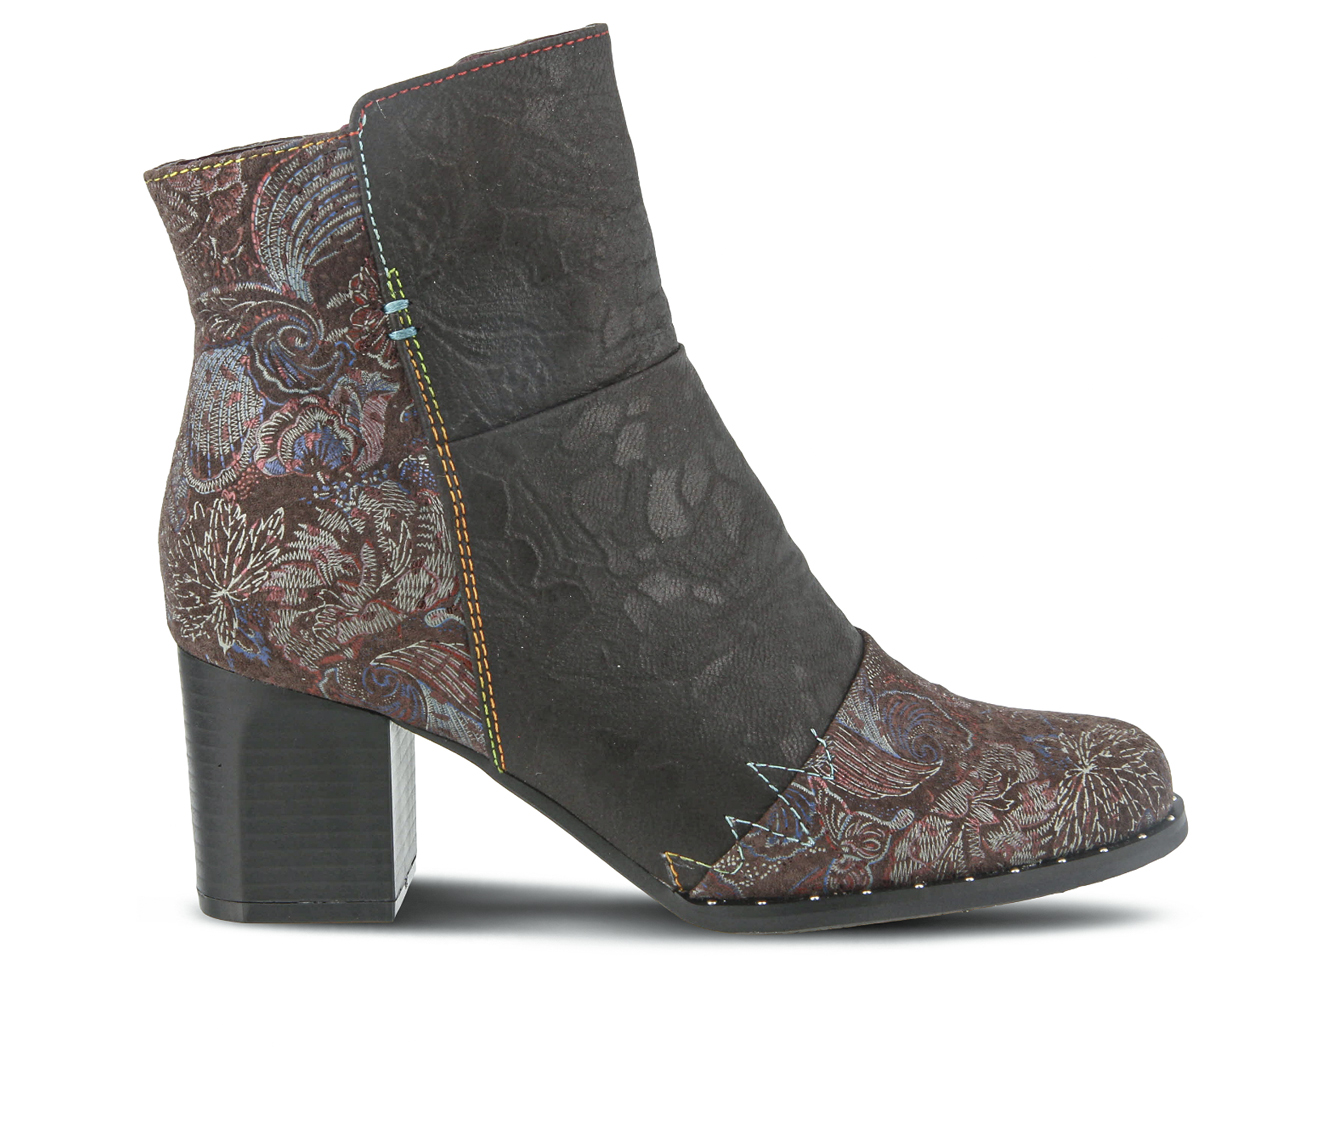 L'Artiste Jewells Women's Boots (Brown Leather)